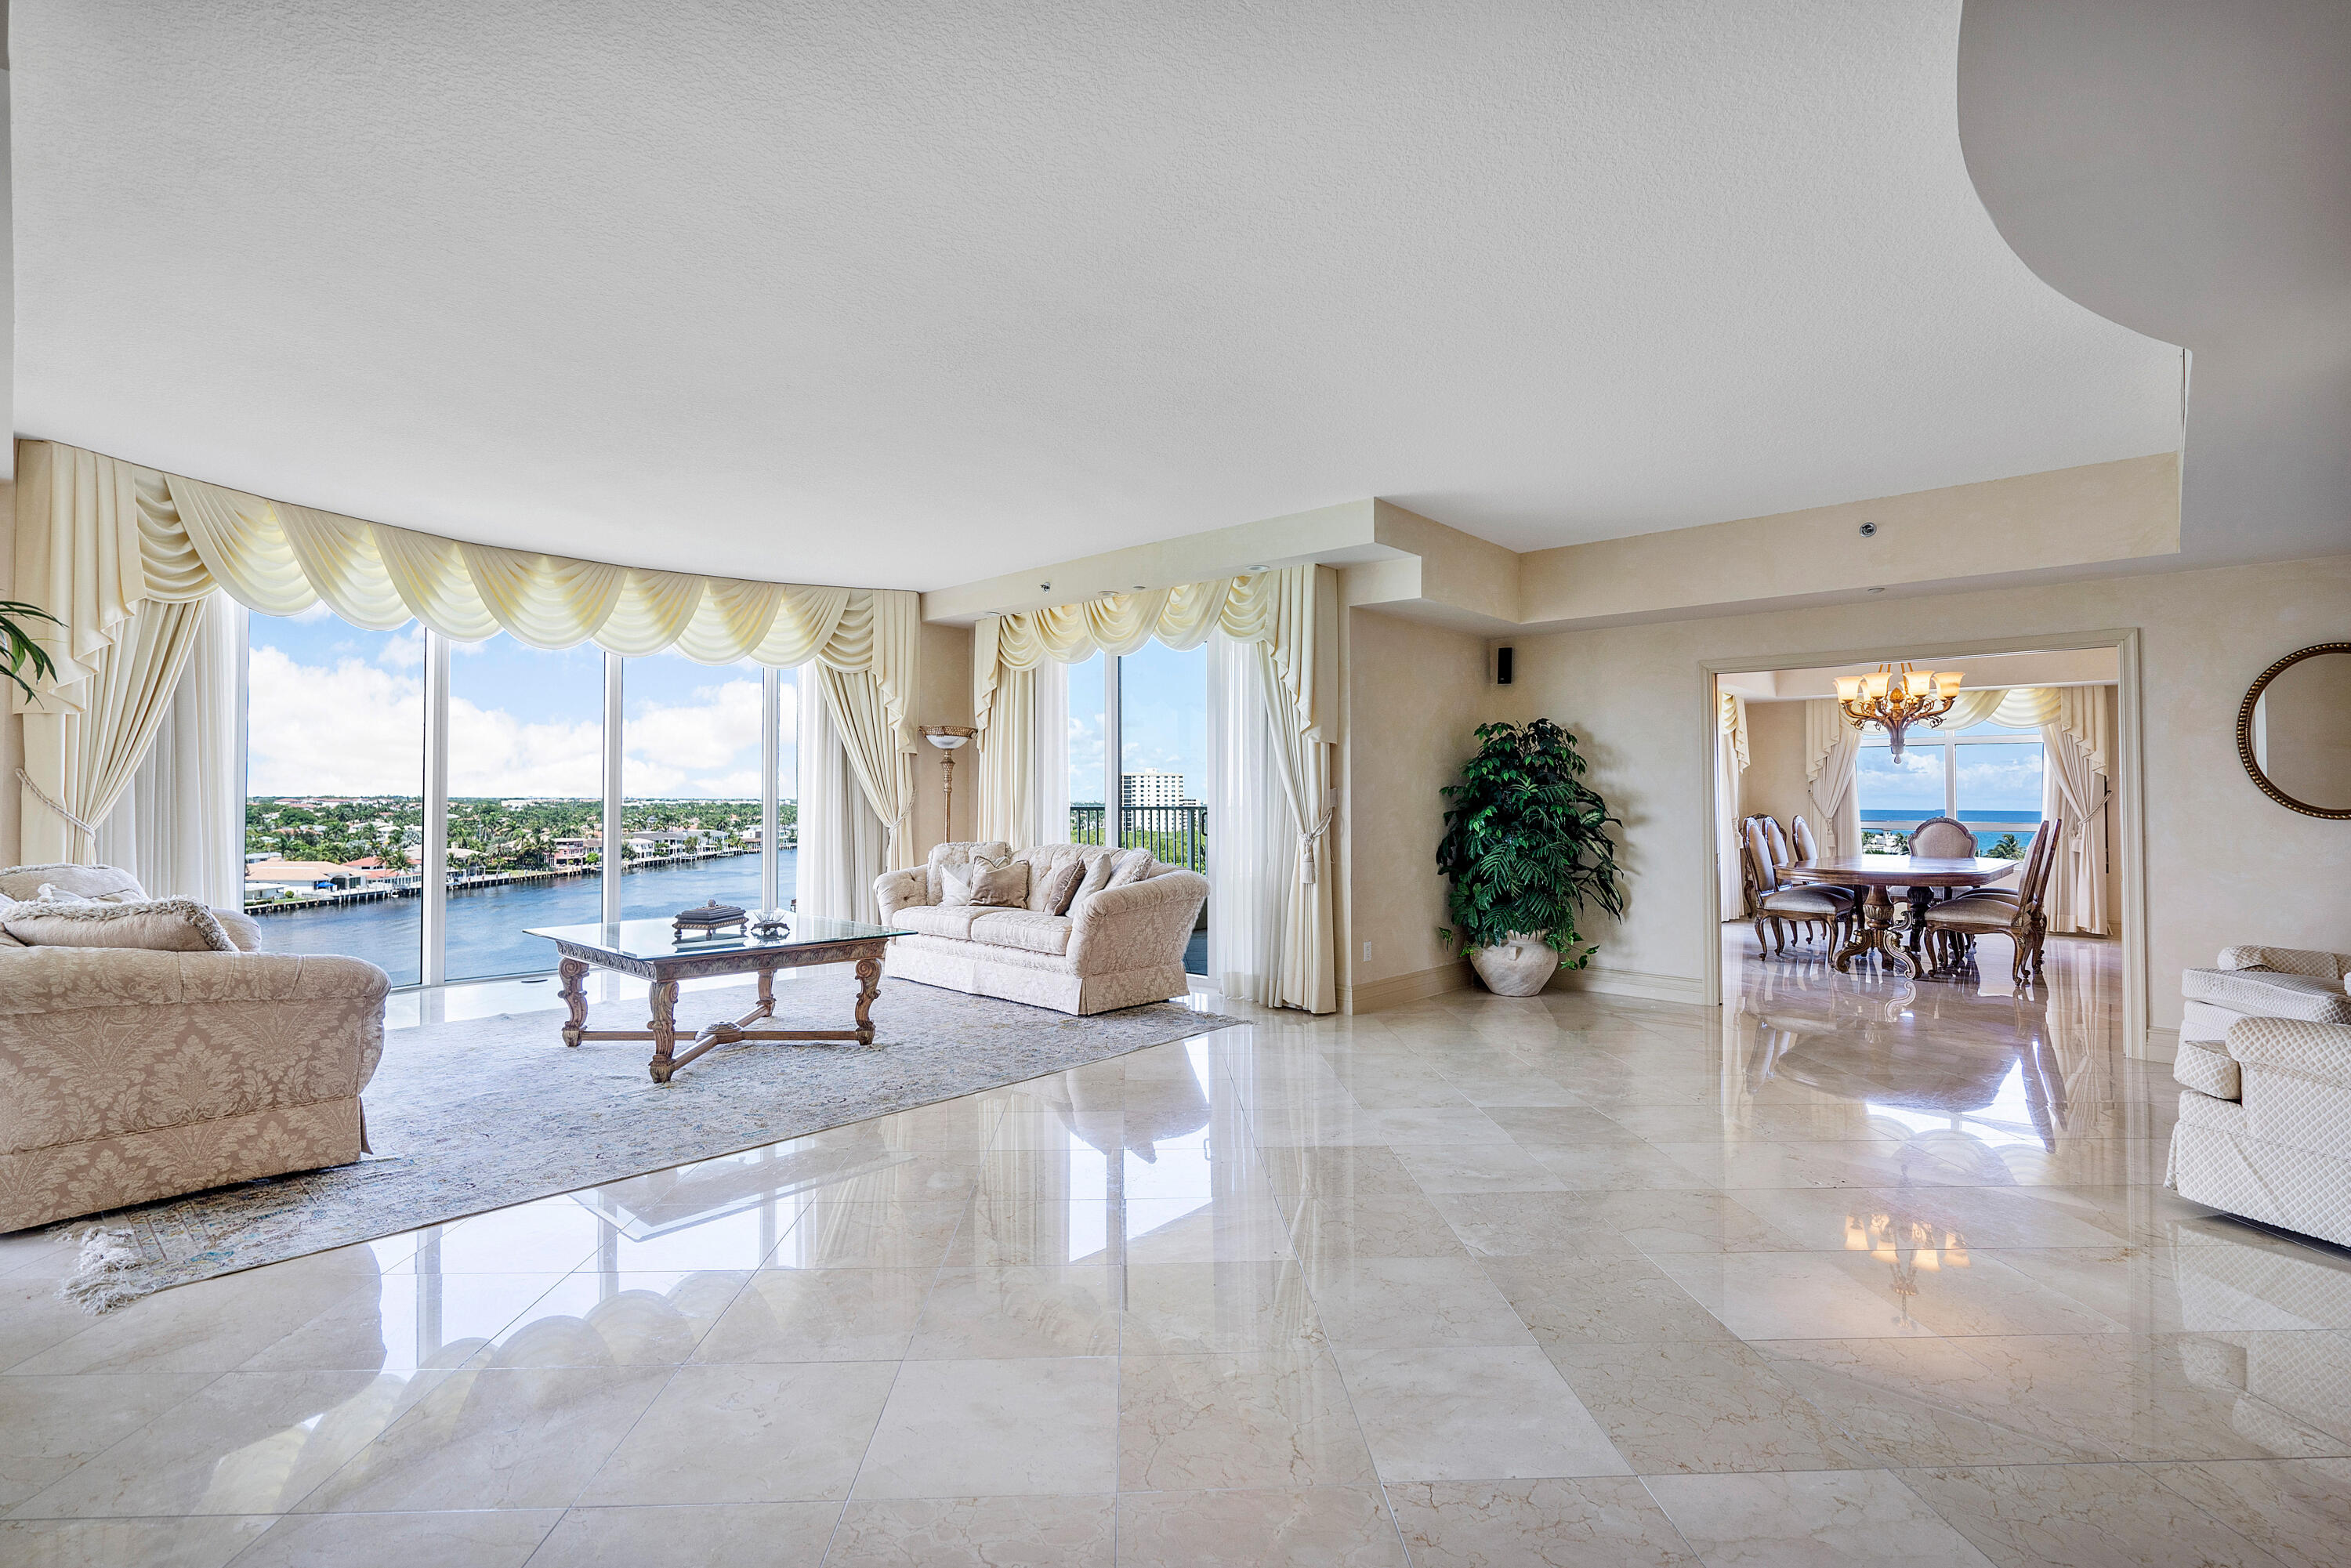 From the moment you enter your private elevator entrance you are welcomed with over 5,400sqft of open living space and 360 degrees of drop dead gorgeous intracoastal waterway & ocean views from every room. This luxury residence boasts 5 spacious ensuite bedrooms & baths, plus powder bath, formal dining & great room. Each room offers large private balconies to enjoy the magnificent sunrise & sunset water and resort views totaling over an additional 1,000sqft. Boasting a chef's kitchen with large island and ample storage space with kitchen nook facing turquoise ocean waters. Over 9 Ultra-large walk-in closets throughout residence, polished marble flooring in main living areas, grand atrium foyer with direct waterway views from the floor to ceiling glass windows, high ceilings and stunning... all marble bathrooms with frameless glass showers & jetted soaking tubs are just a few of the key attributes to this home. Great room features a wet bar for entertaining and private balcony. Fabulous over-sized laundry room w/ sink and private trash-chute for ease. The residence is impact glass complete and includes 2 garage parking spaces. Toscana truly offers world class South Florida luxury living with everything right at your fingertips. The Toscana community lifestyle includes exclusive direct ocean access beach club, tennis, multiple resort pools, expansive fitness center, sauna, billiards & game room, clubroom, ample private lounging areas throughout property, valet parking and 24/7 security with a manned gate. You are 5 minutes to iconic Atlantic Ave in Delray offering award winning dining and shopping.